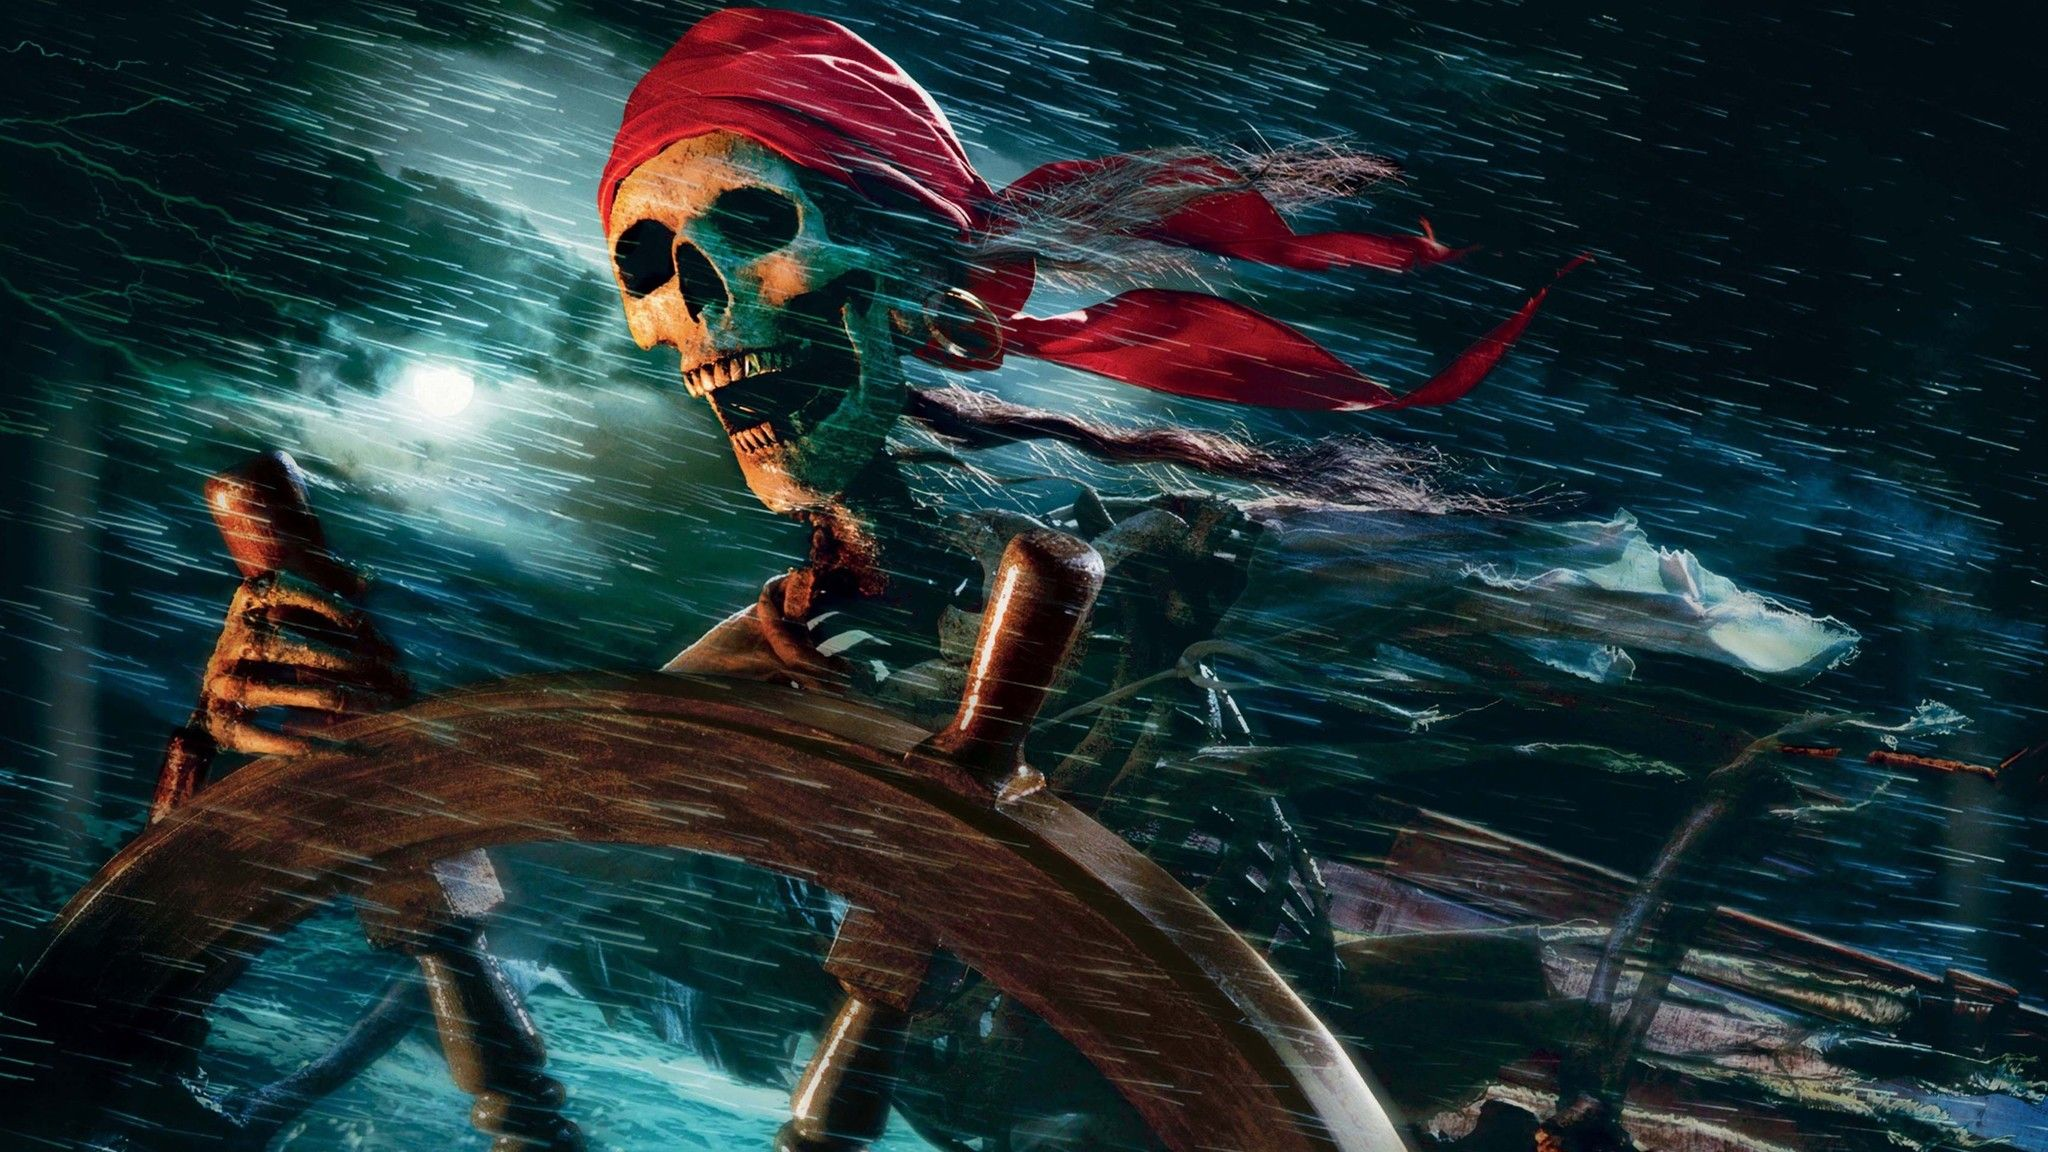 4k Pirate Wallpapers Top Free 4k Pirate Backgrounds